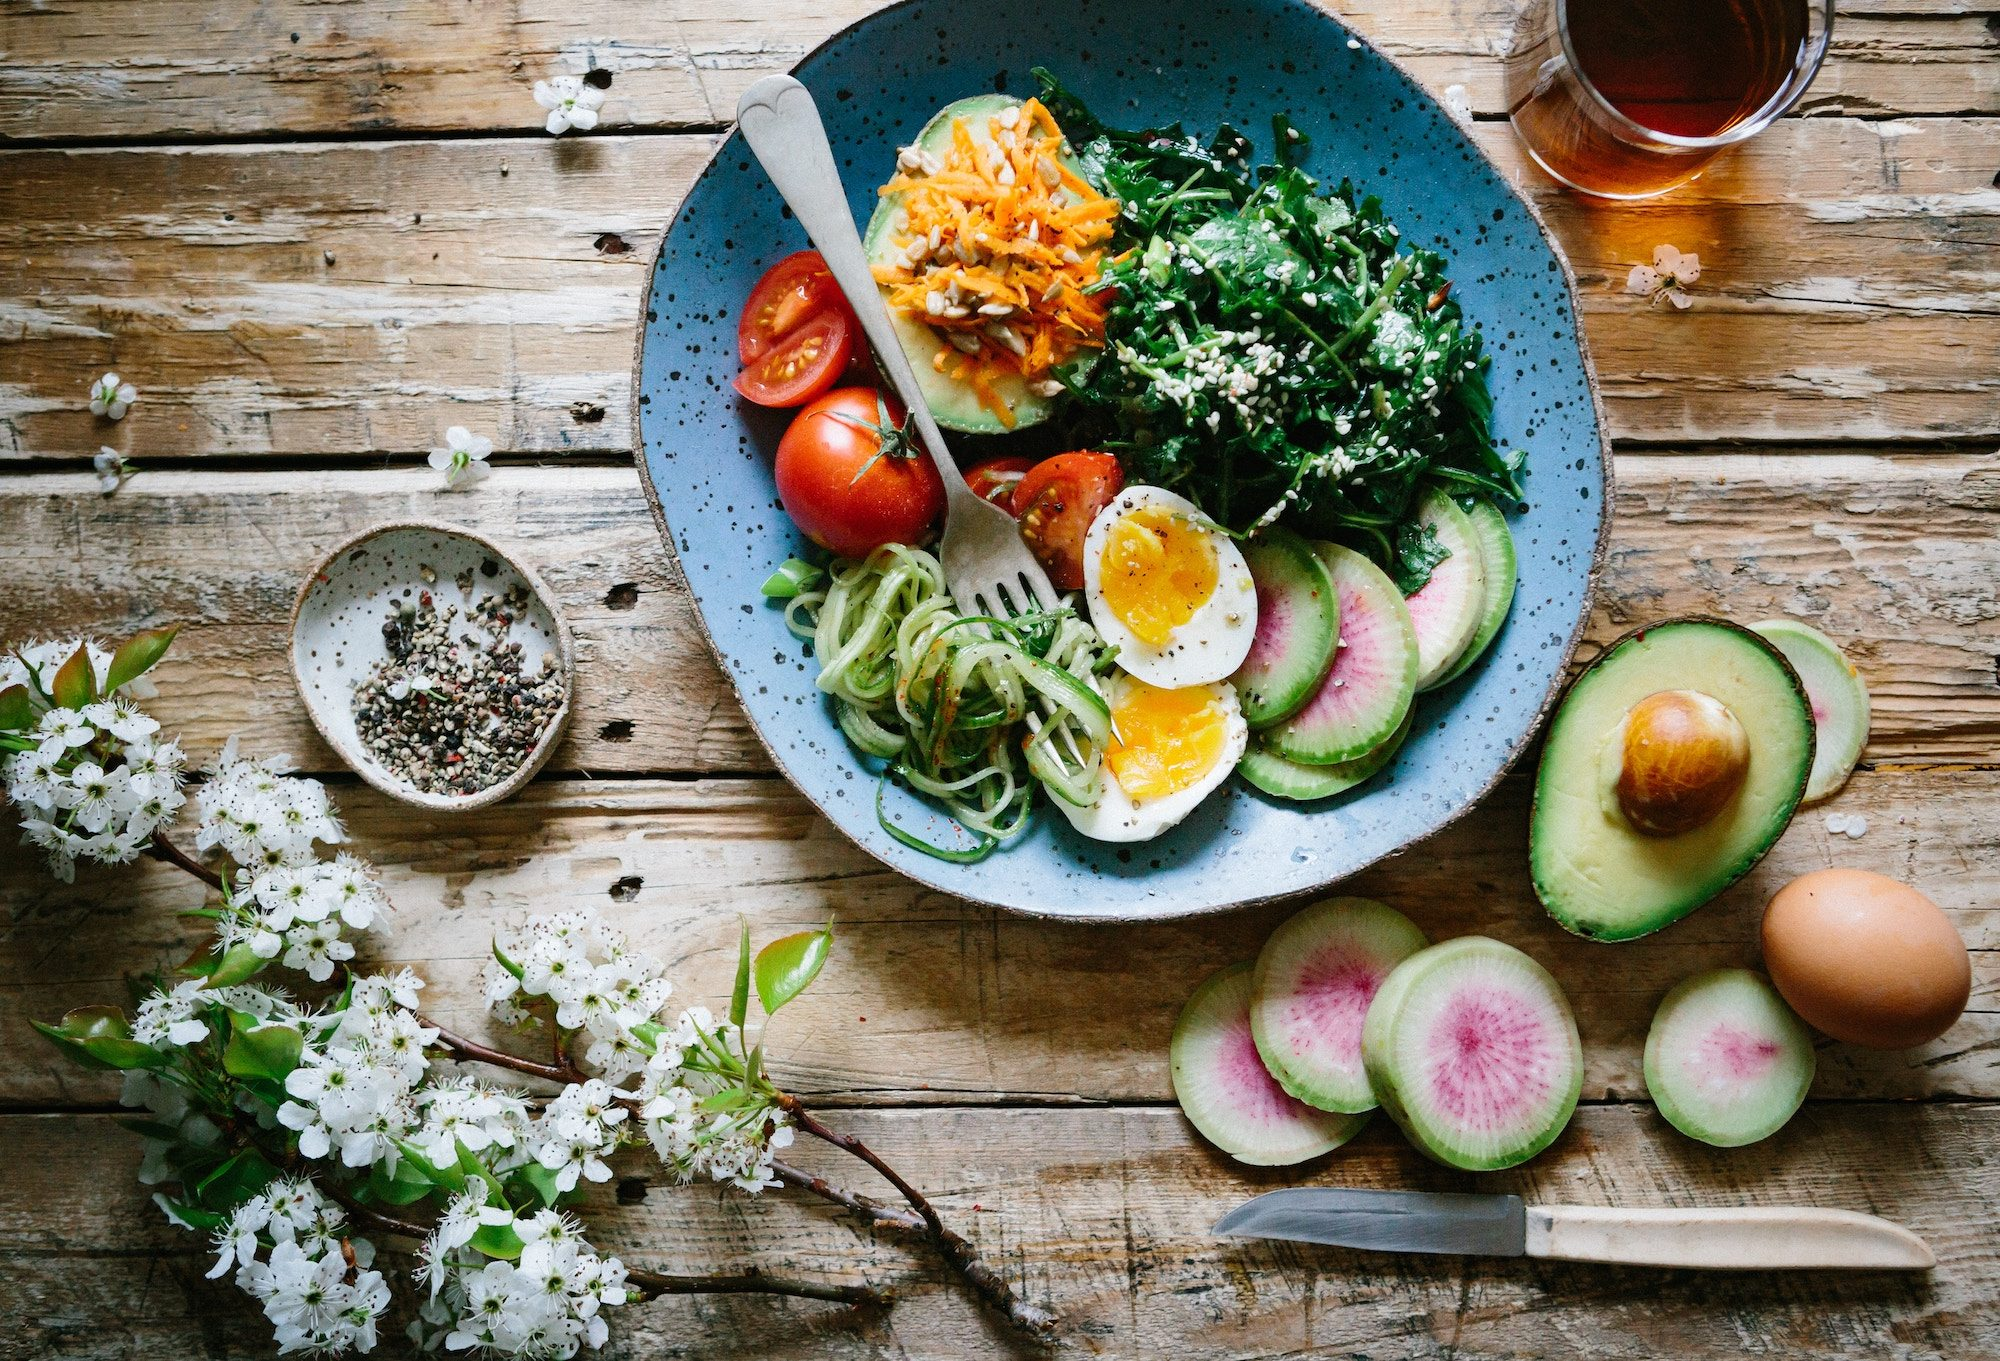 A plate of colorful gluten-free fresh salads and eggs on a wooden table